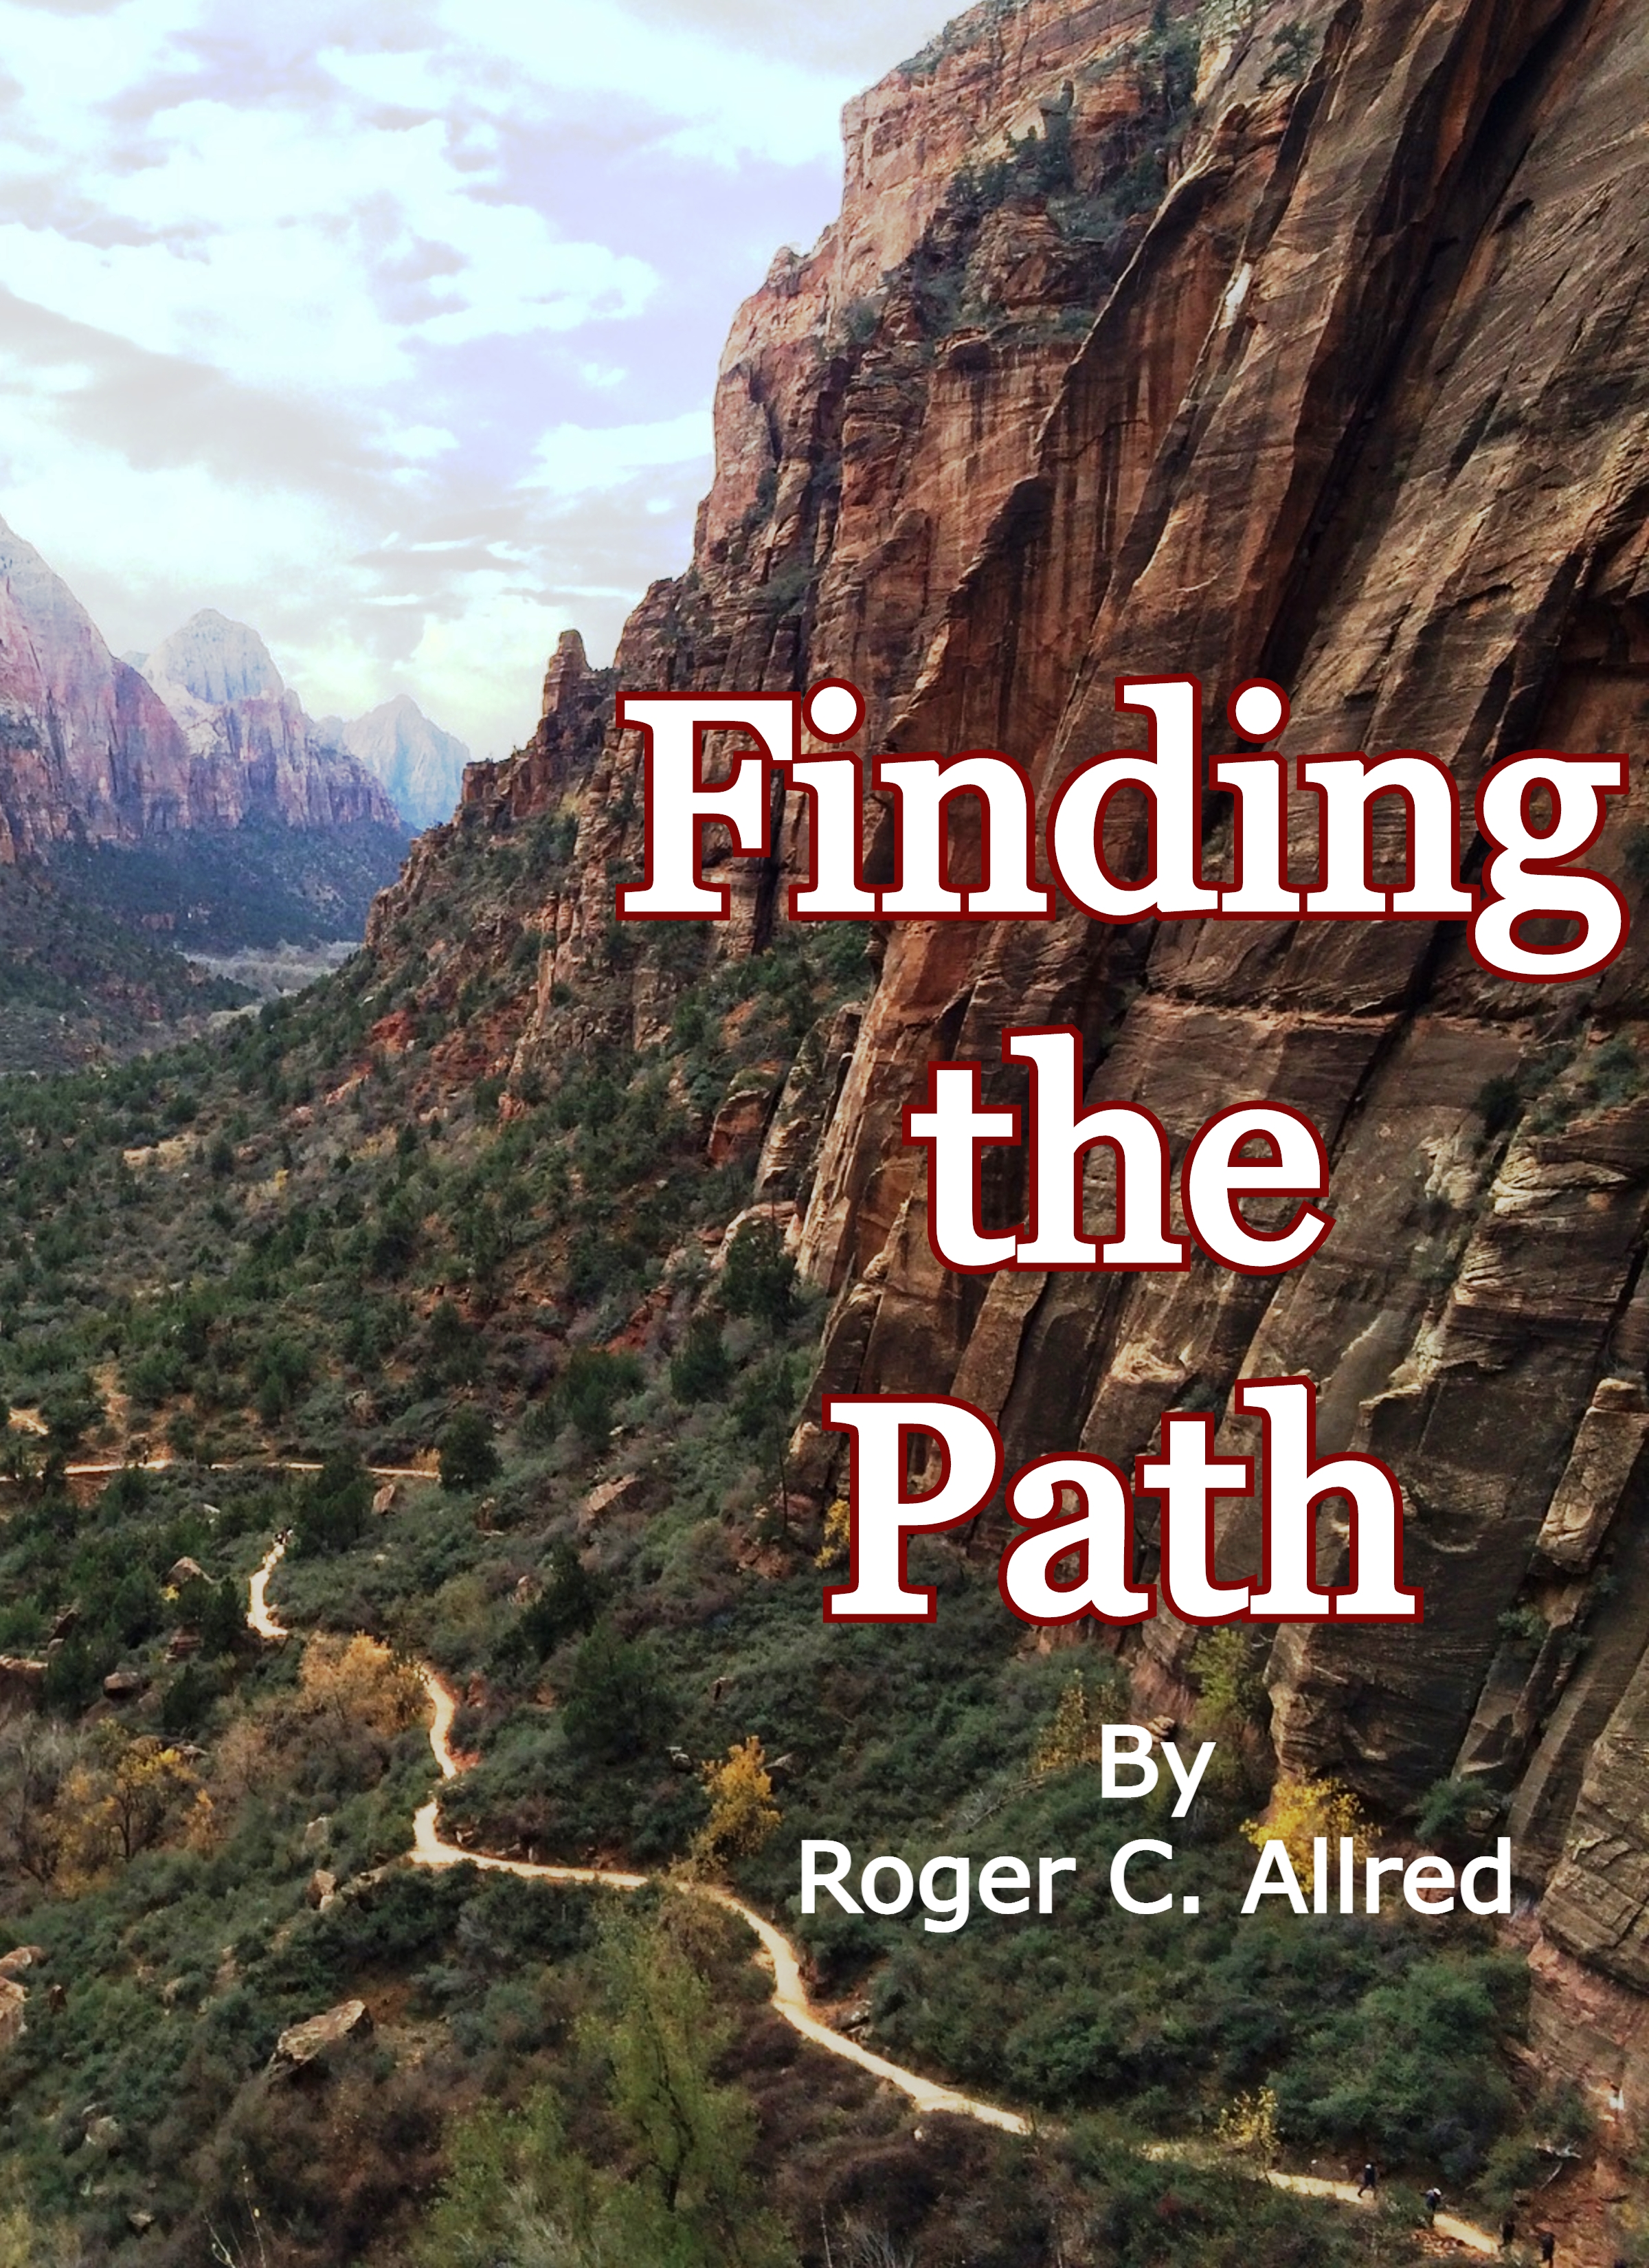 Finding the Path title.pdf